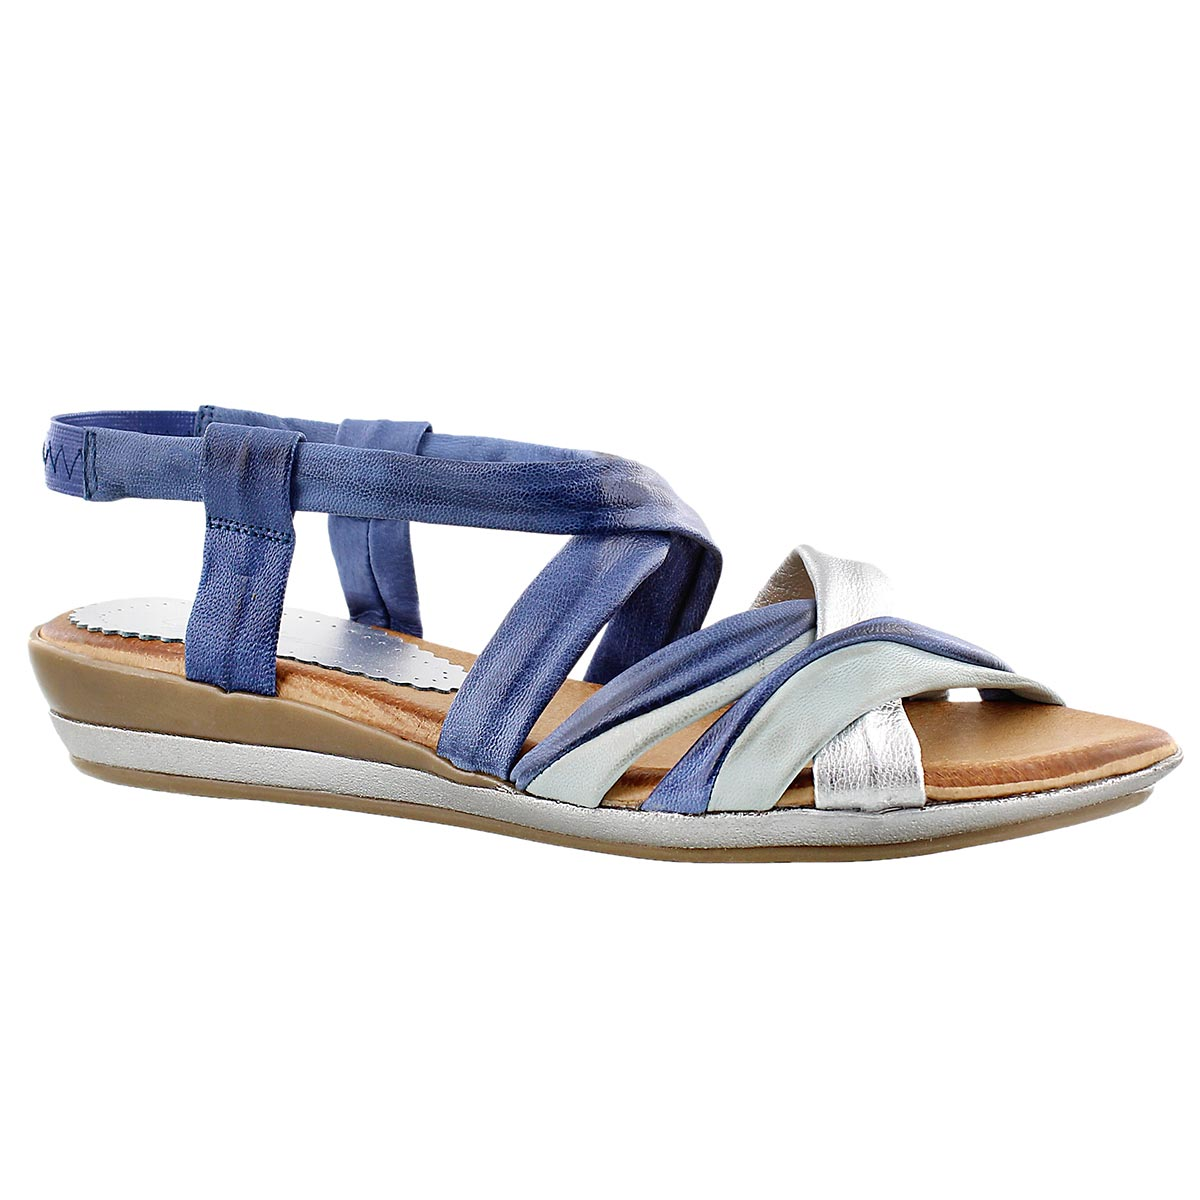 Women's MARIE blue casual sandals